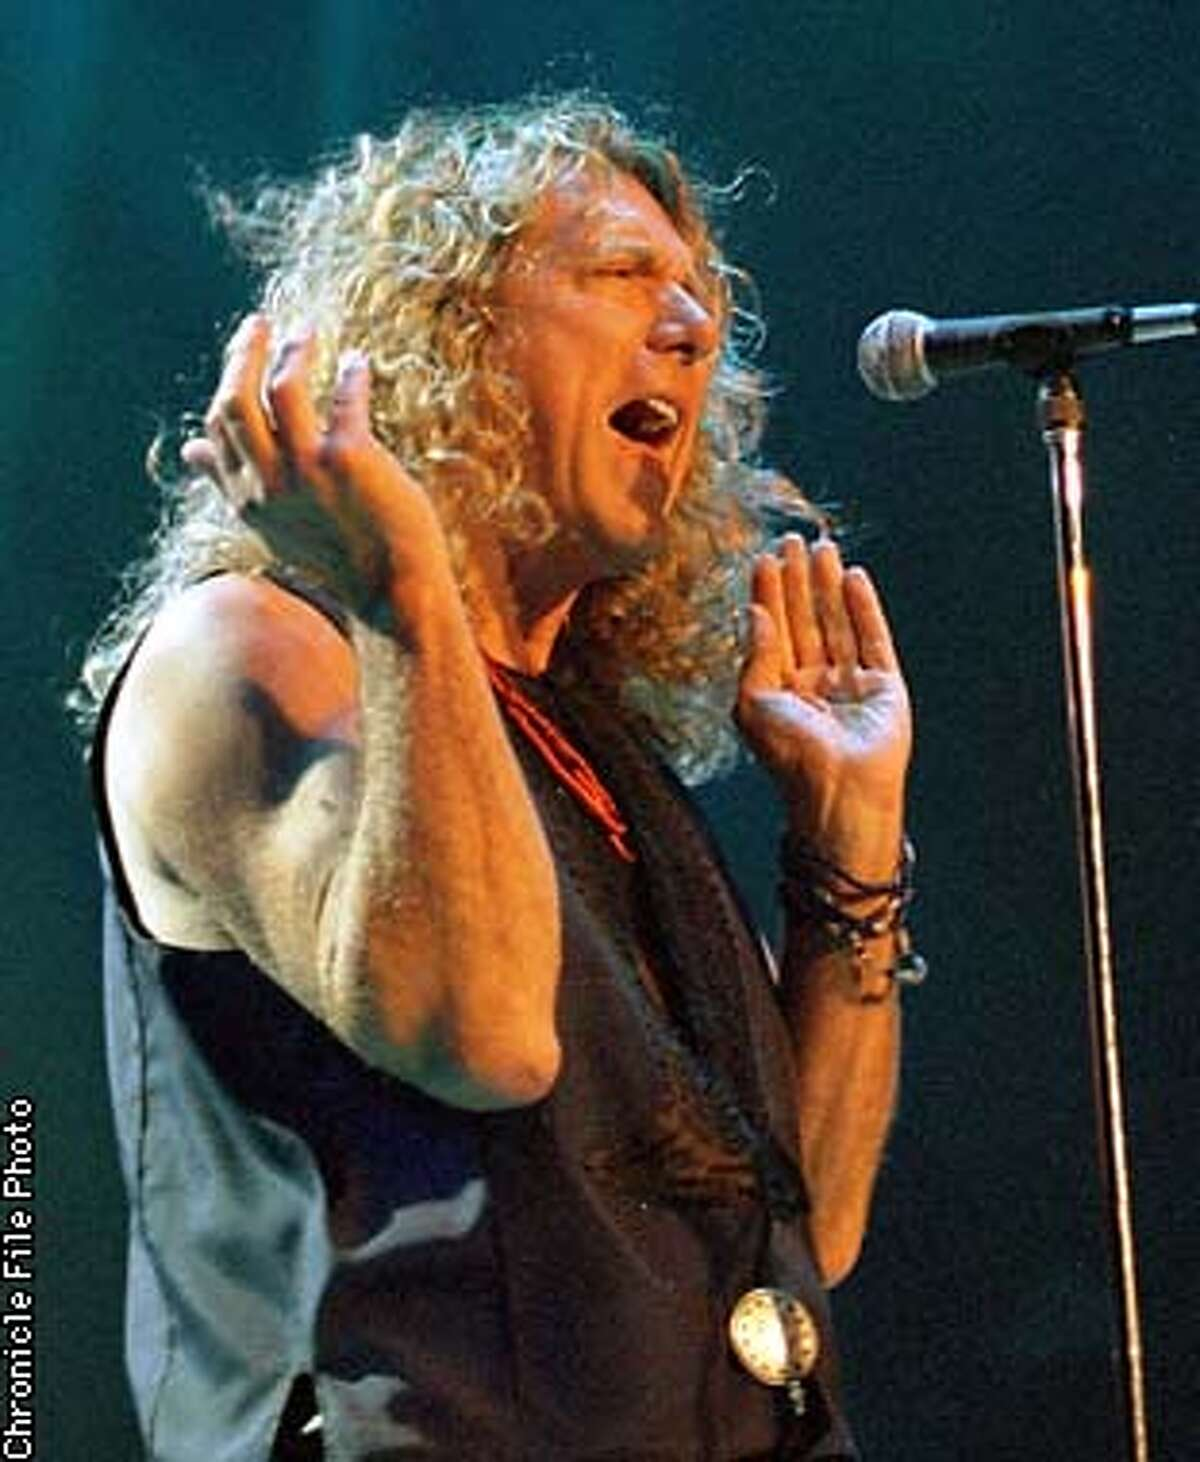 Former vocalist of Led Zeppelin Robert Plant during his concert with guitarist Jimmy Page at the OAkland Coliseum, Friday May19,1995. Chronicle Photo By: Peter DaSilva